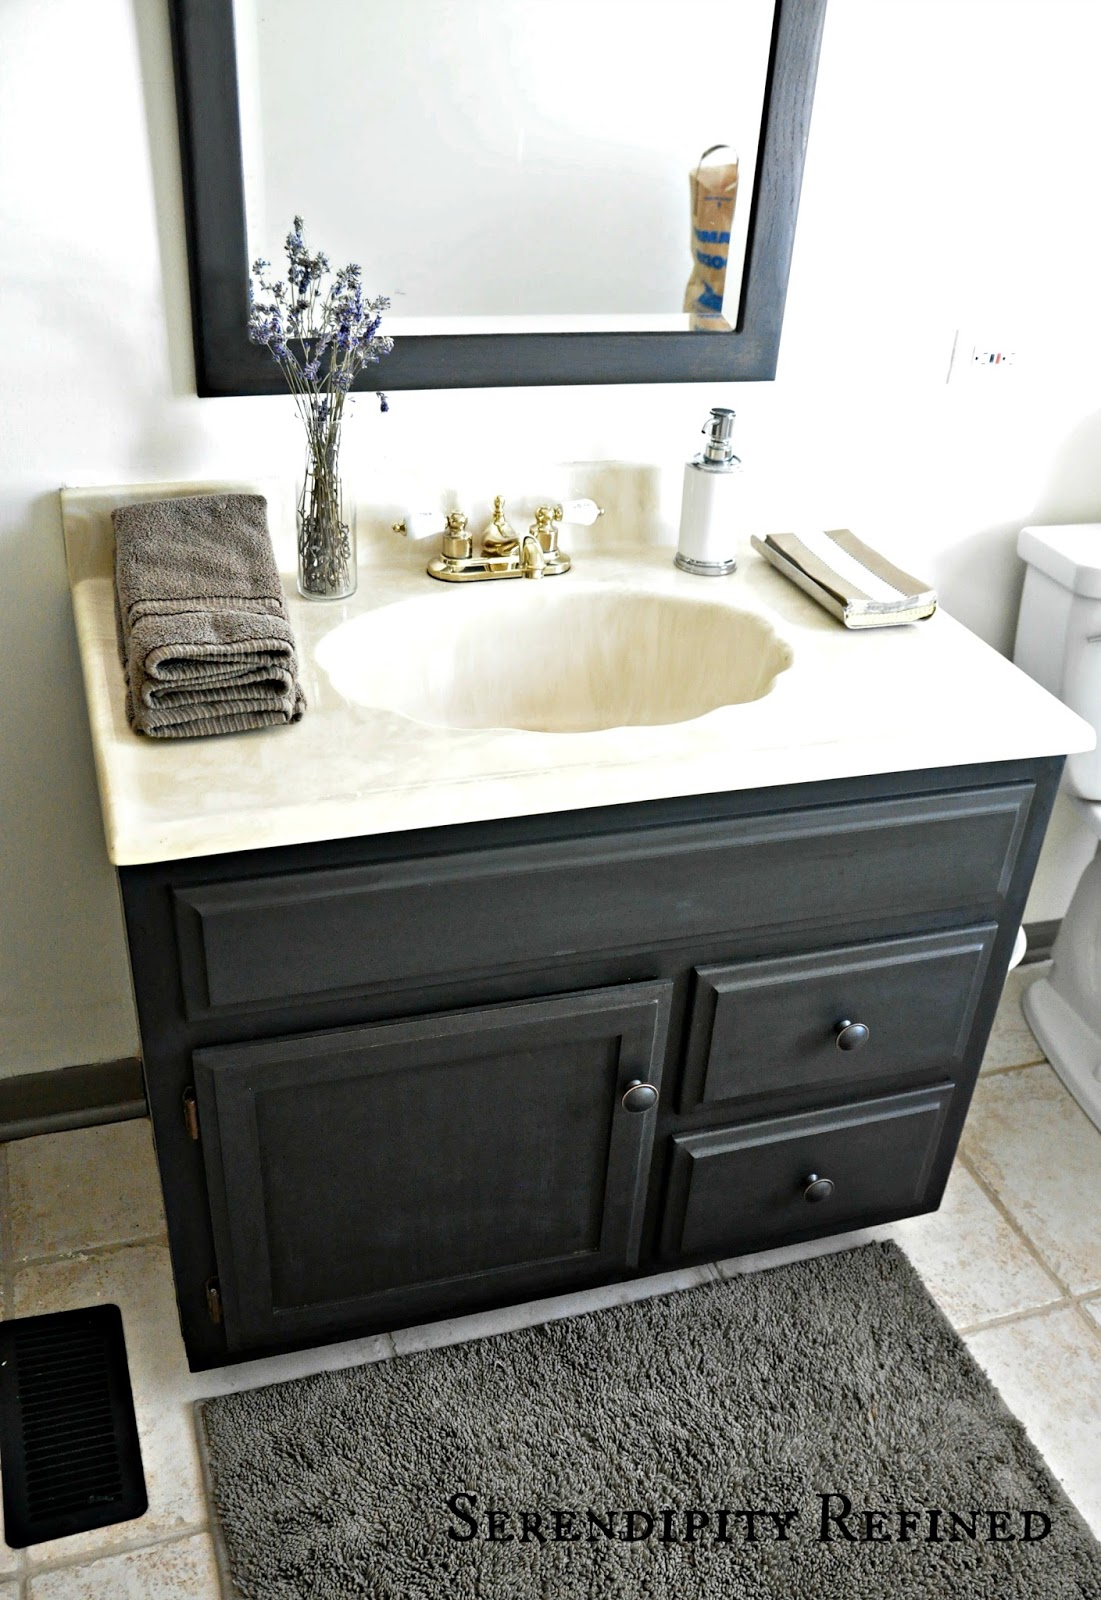 Painted Bathroom Vanity Serendipity Refined Blog How To Update Oak And Brass